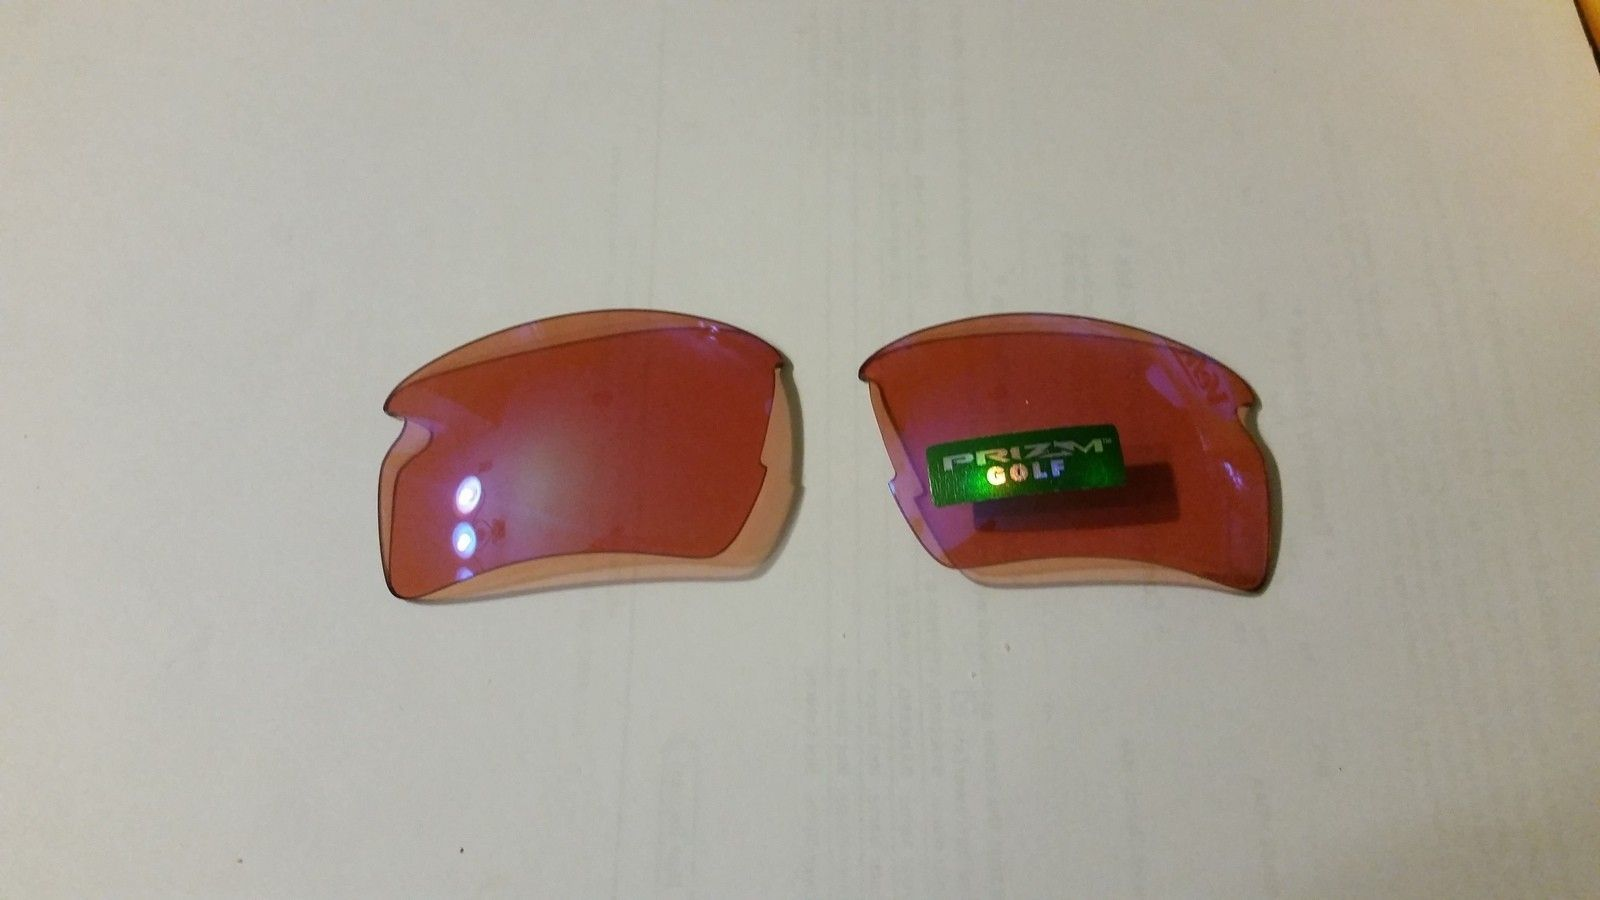 Flak 2.0 golf prizm lenses - uploadfromtaptalk1443271924358.jpg